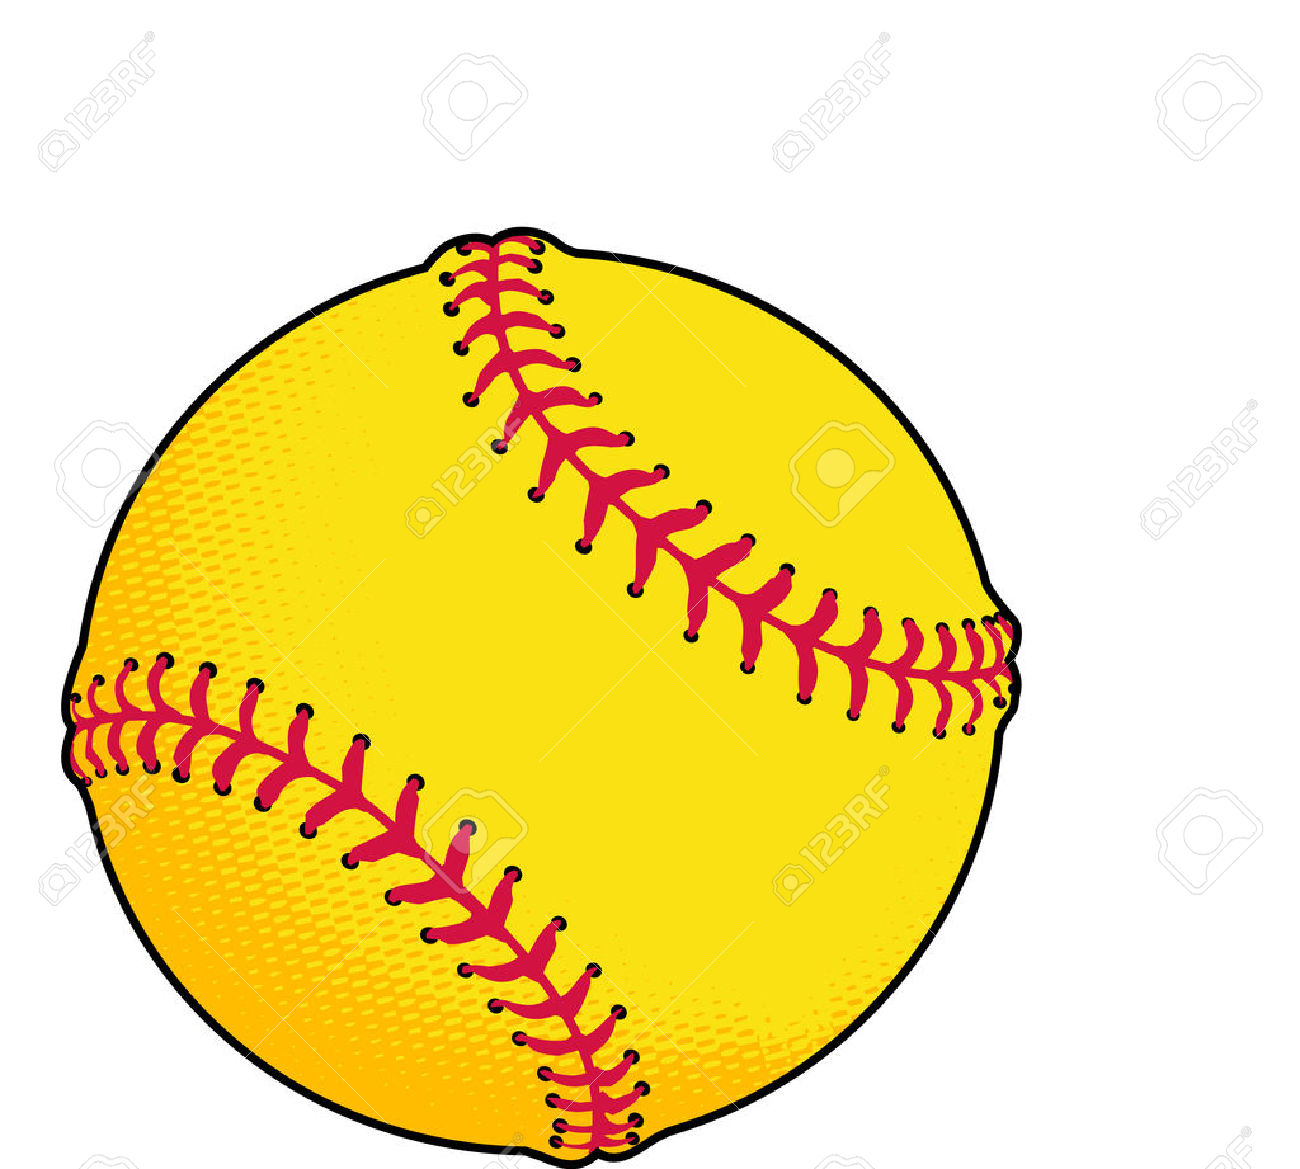 Free animated softball clipart transparent stock Free Softball Clipart | Free download best Free Softball Clipart on ... transparent stock